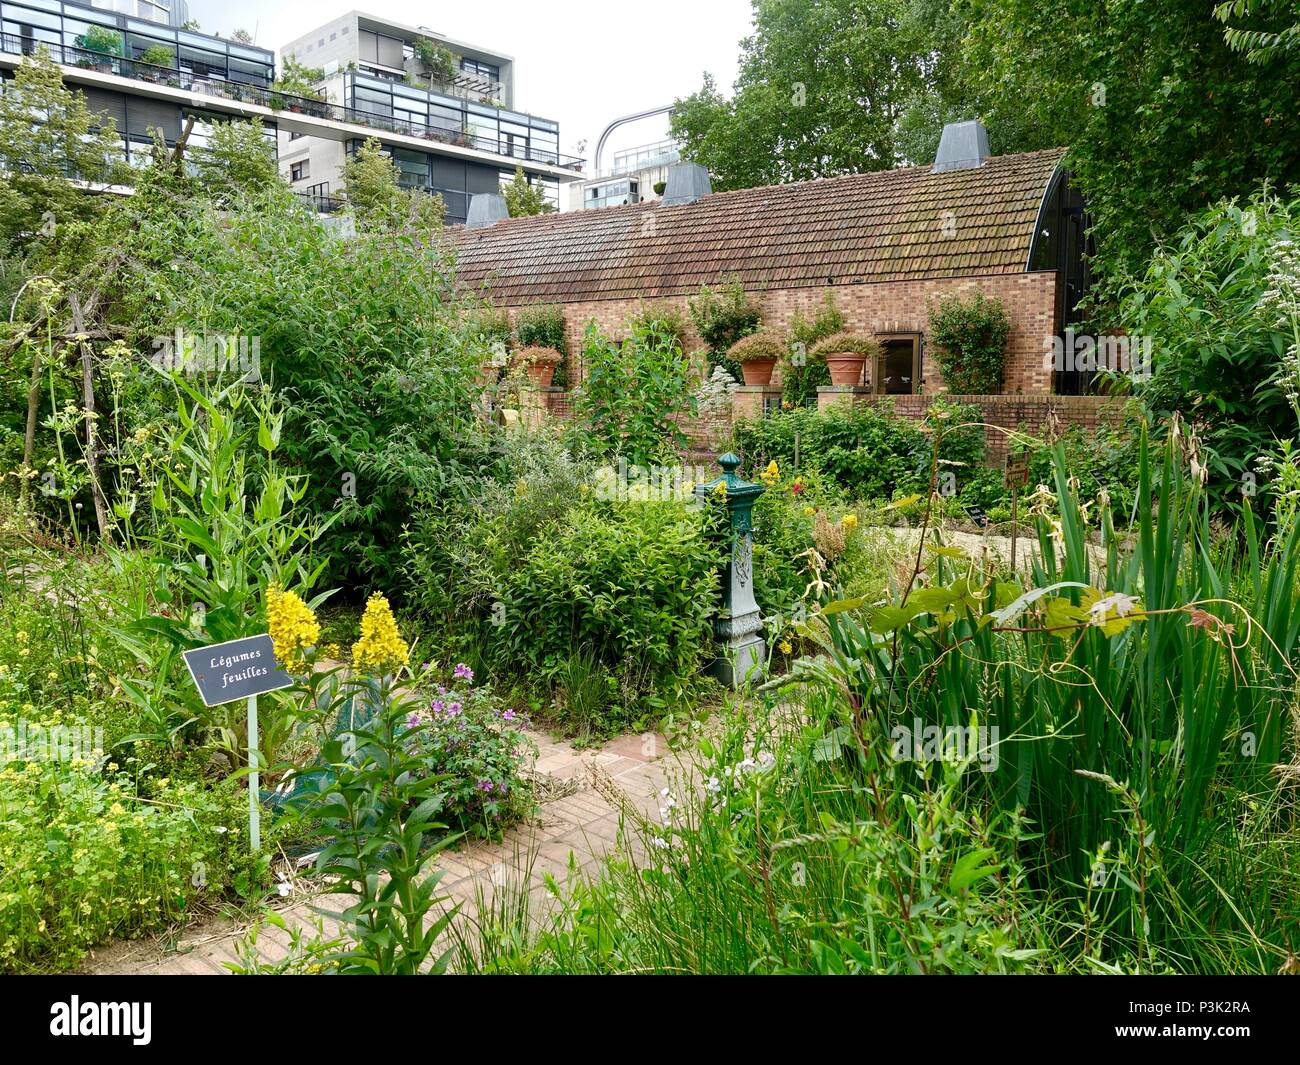 Parisian kitchen garden overlooked by modern apartments, Bercy Park, Paris, France - Stock Image